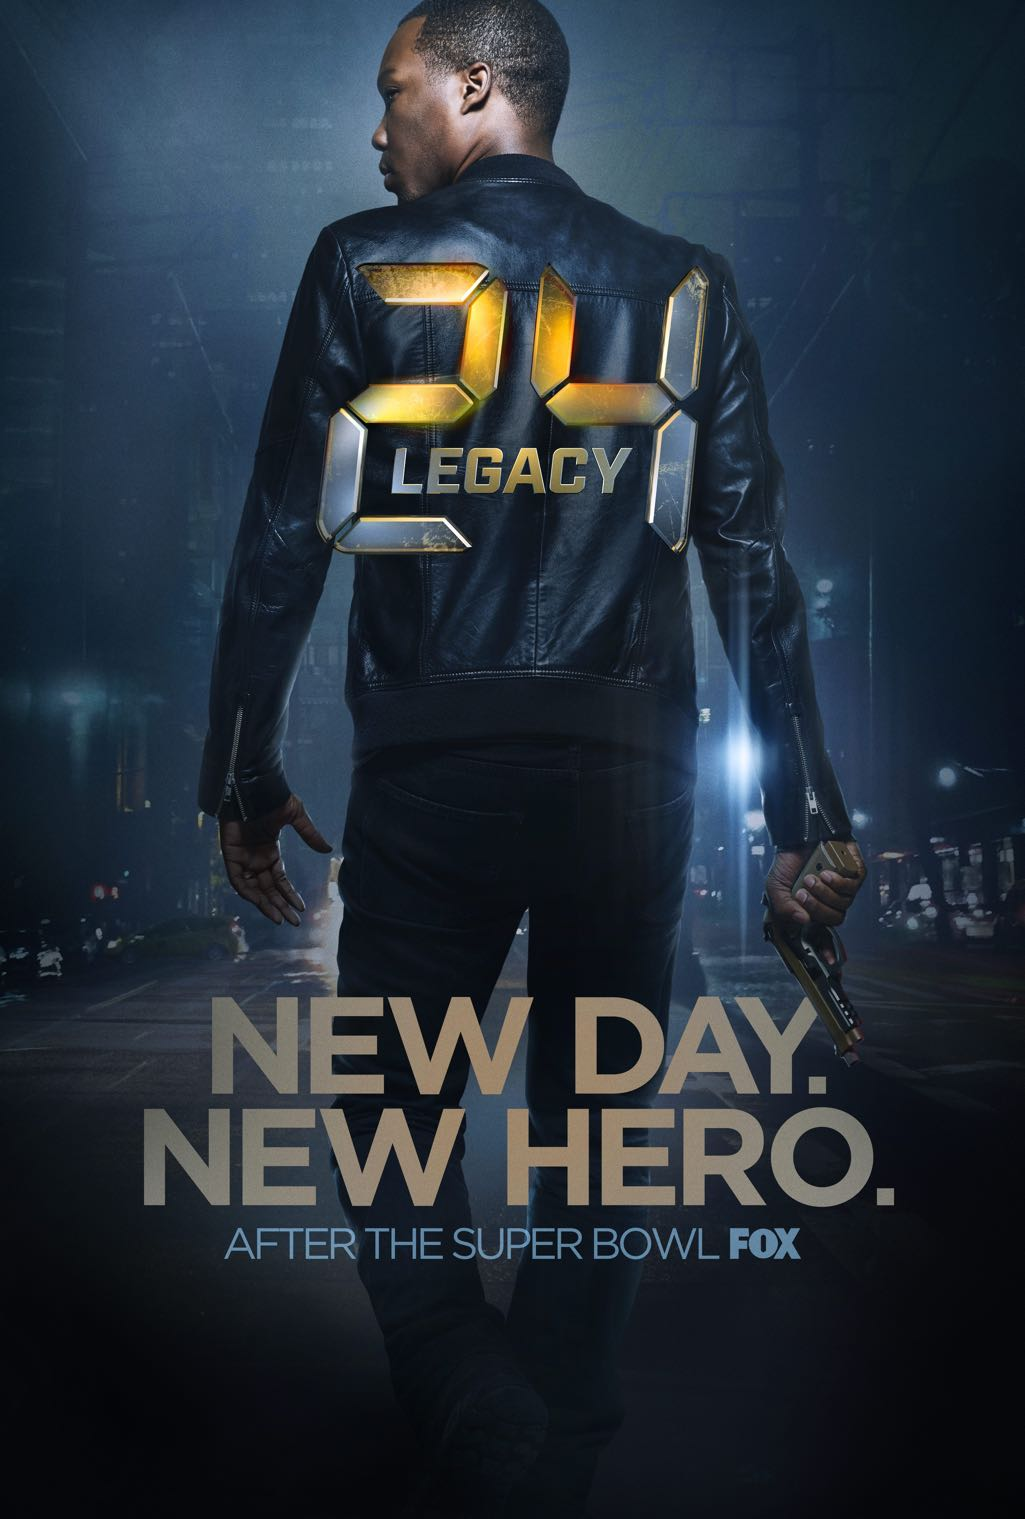 24 Legacy Season 1 Episode 2 Download 480p WEB-DL 150MB